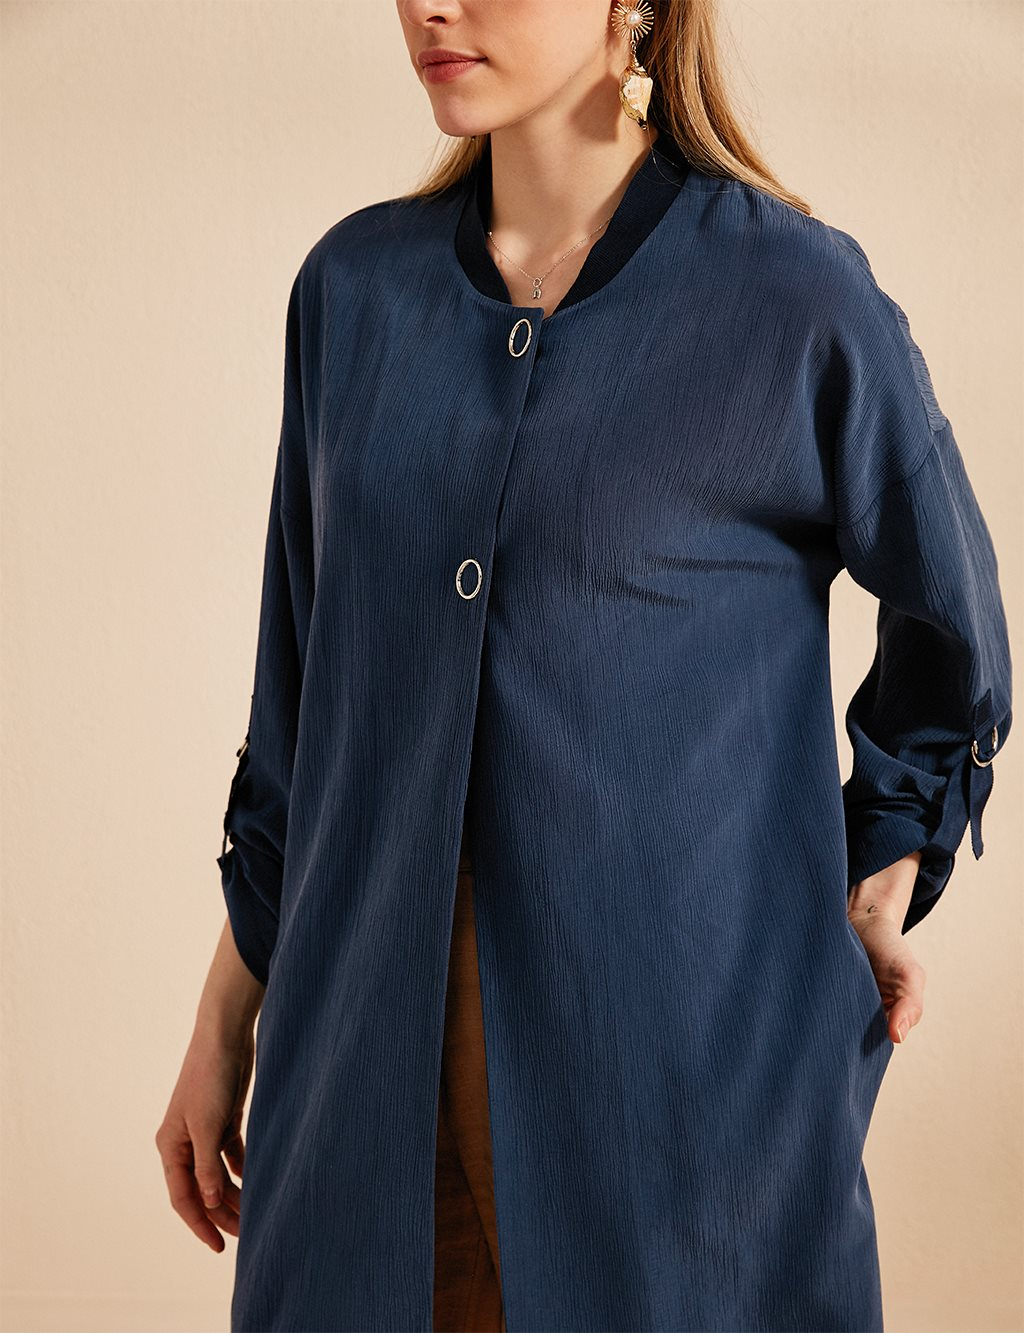 Jacket With Button Details B20 13009 Indigo